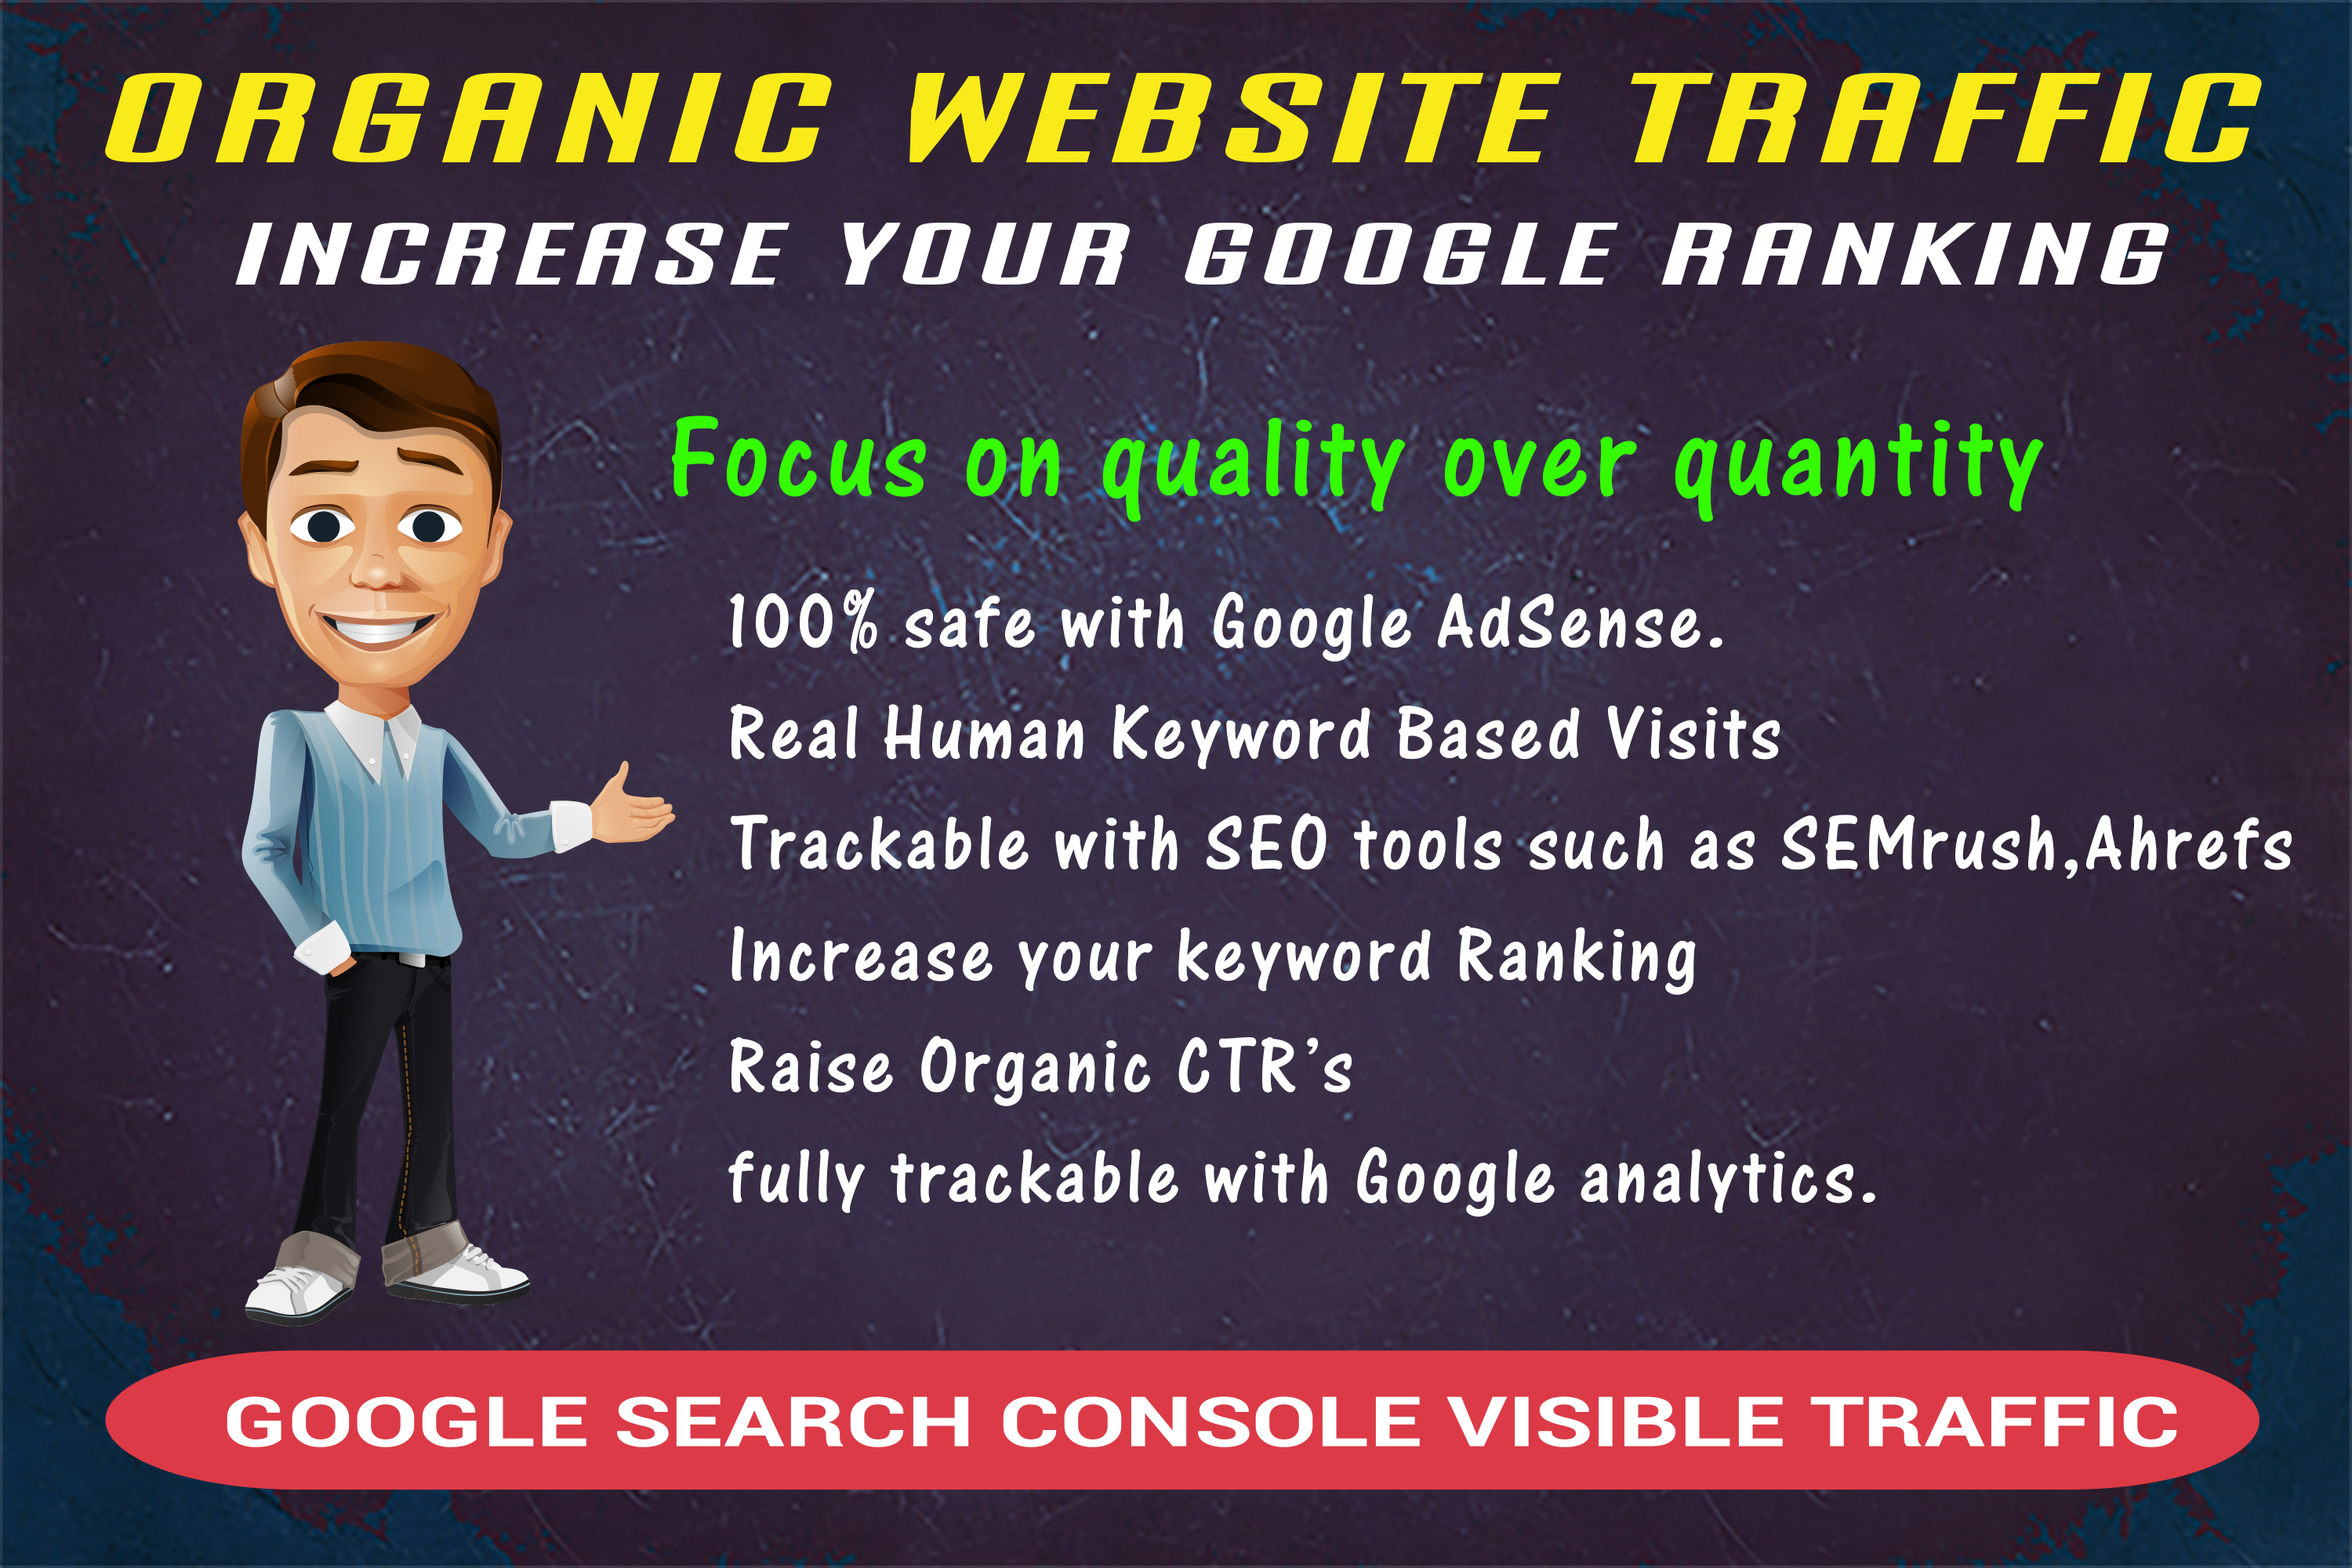 send search console trackable organic traffic to increase your google ranking